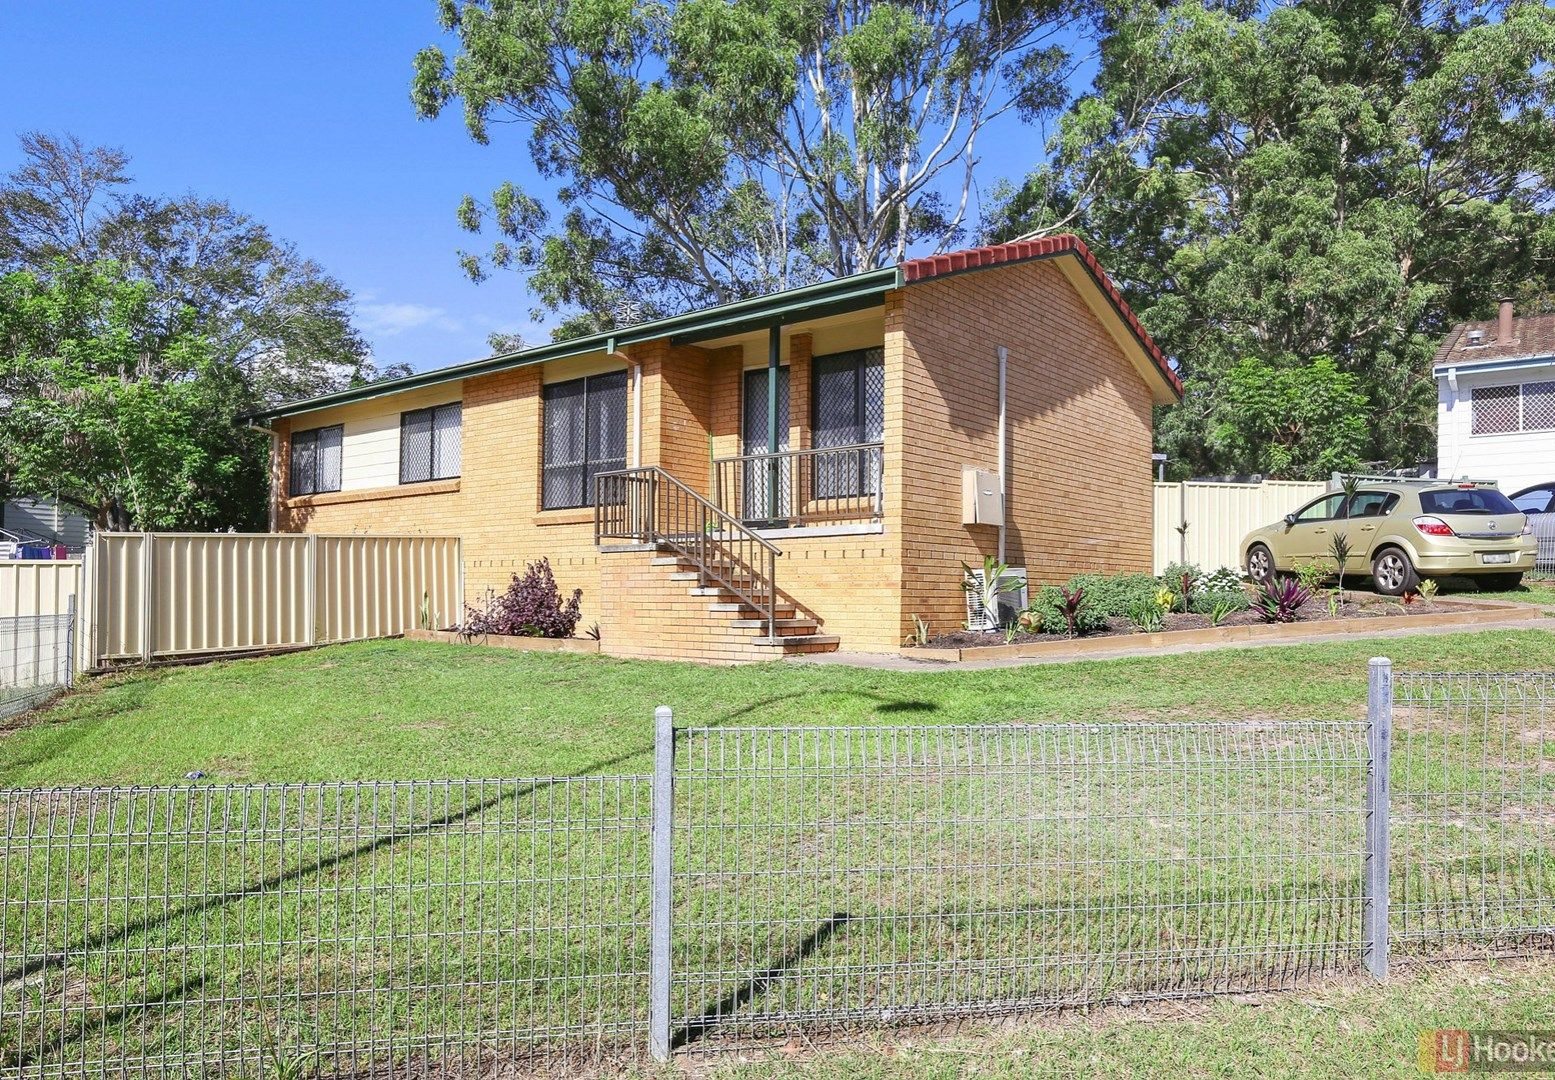 2 francis smith place, south kempsey nsw 2440 - house for sale | domain